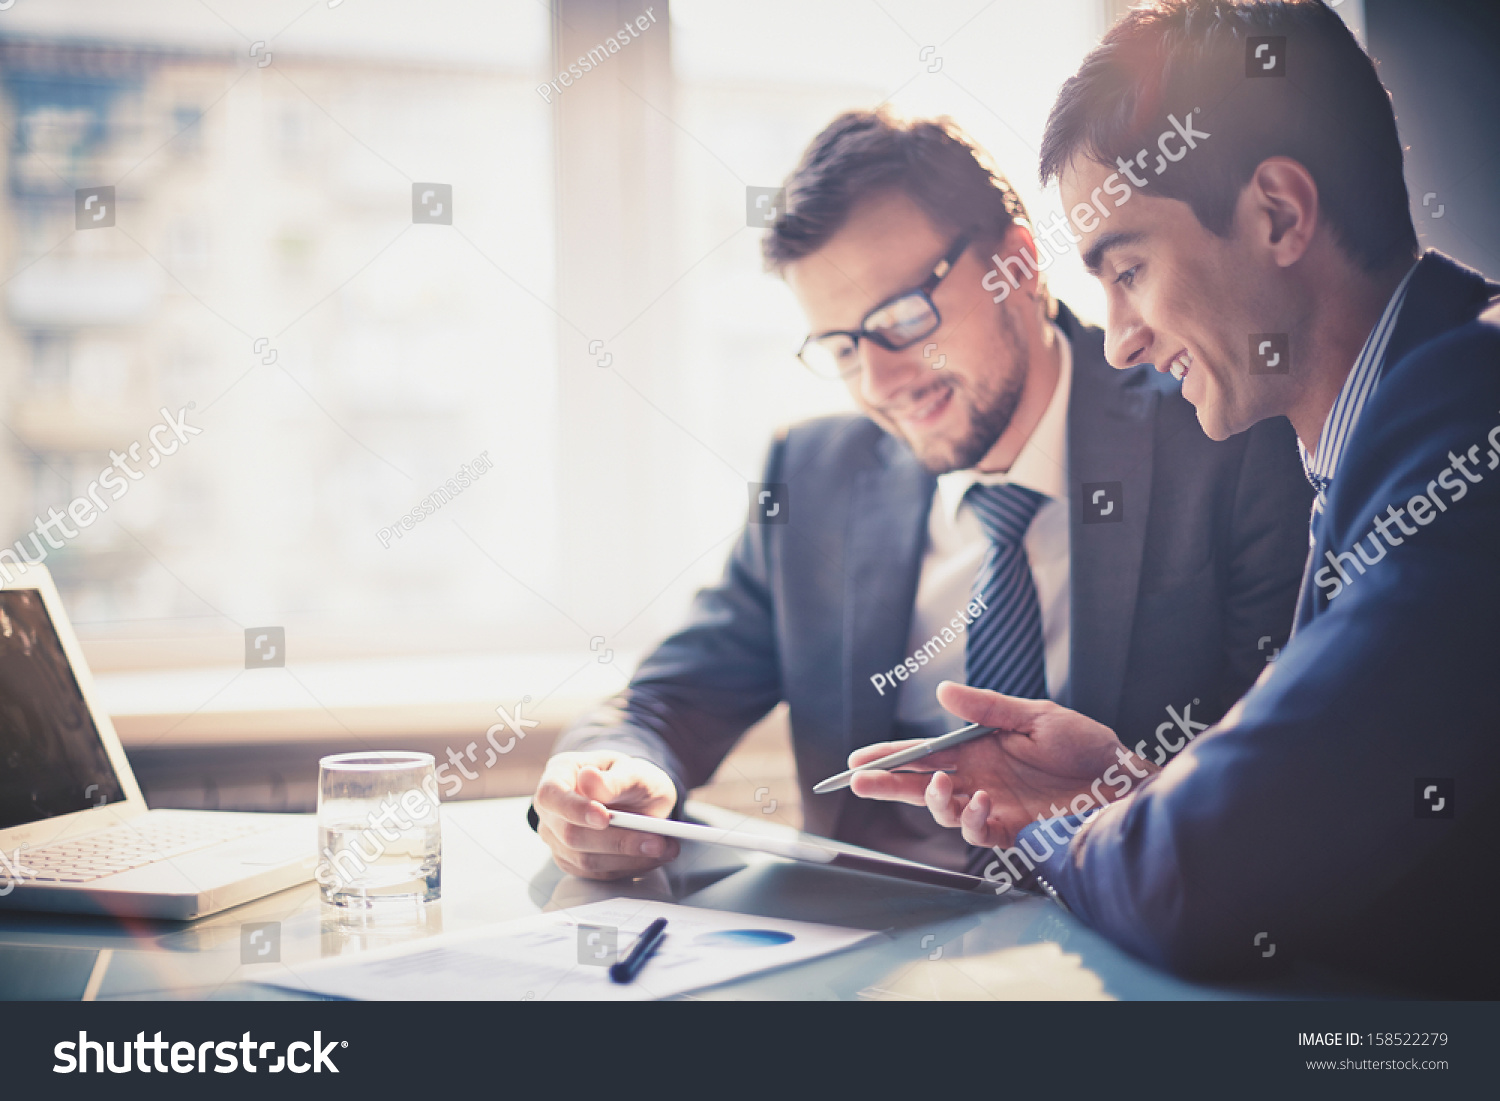 Image of two young businessmen using touchpad at meeting #158522279 - 123PhotoFree.com